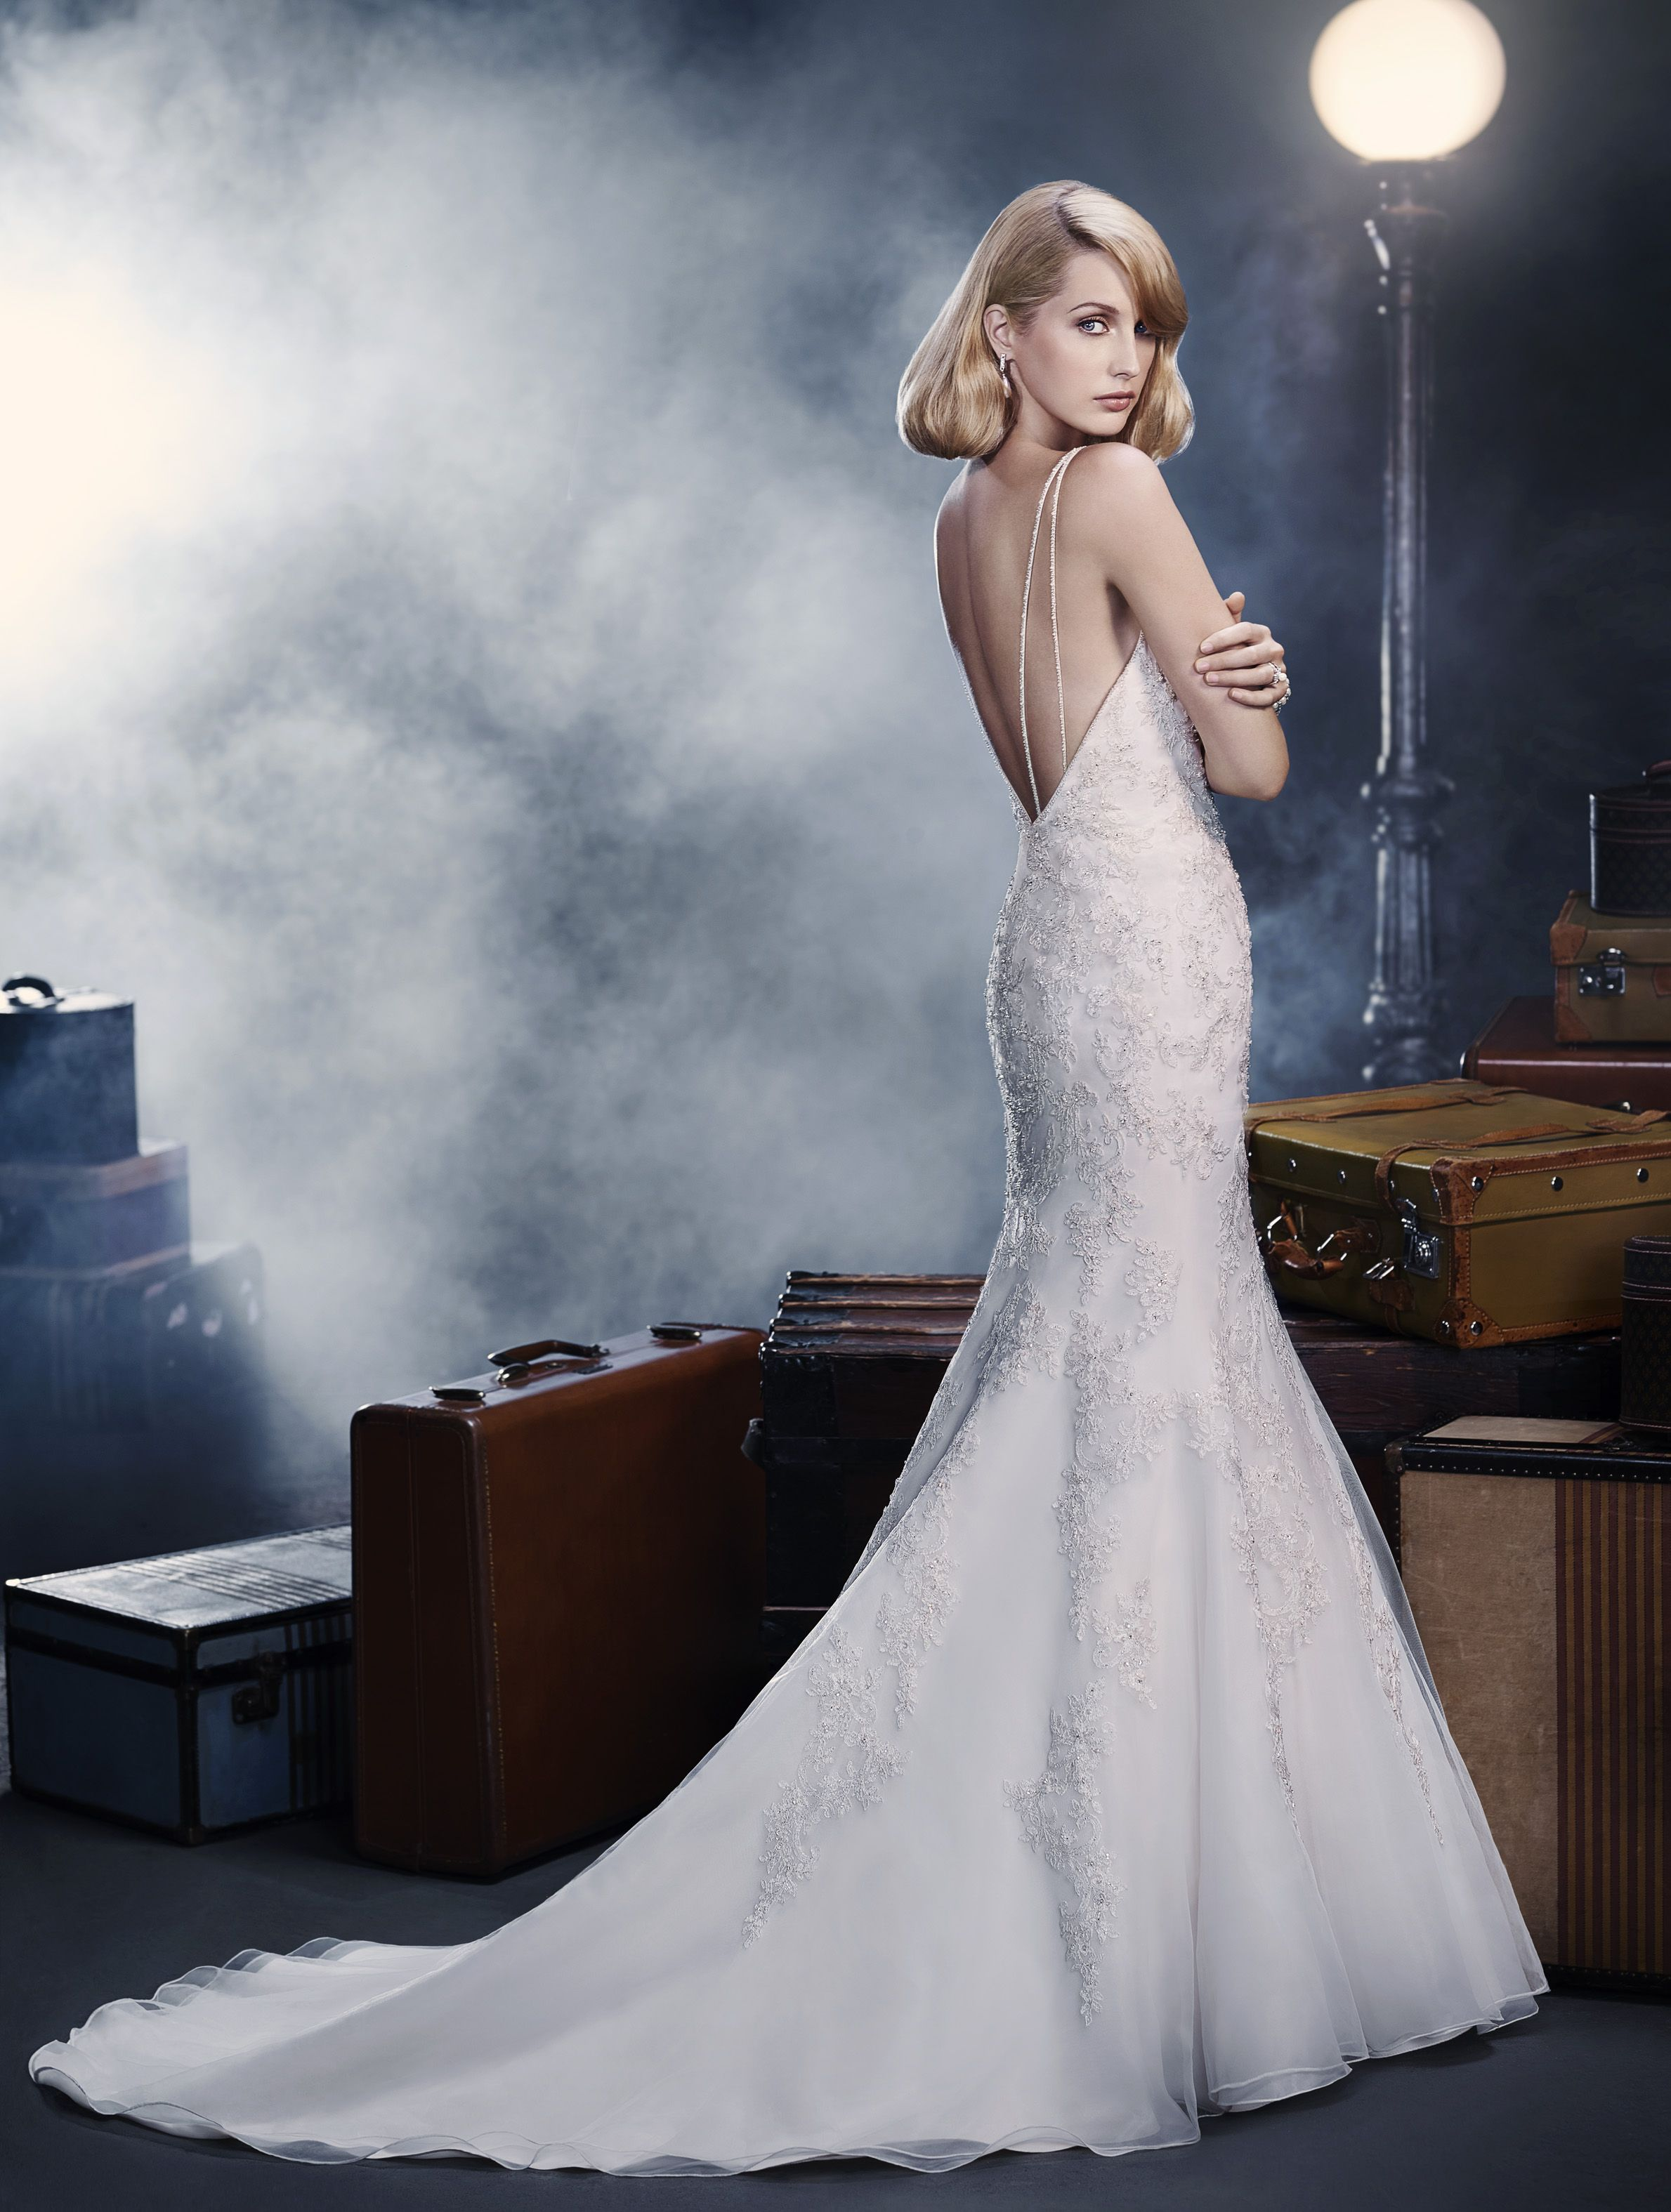 Amazing Silver And White Wedding Dress Collection - All Wedding ...